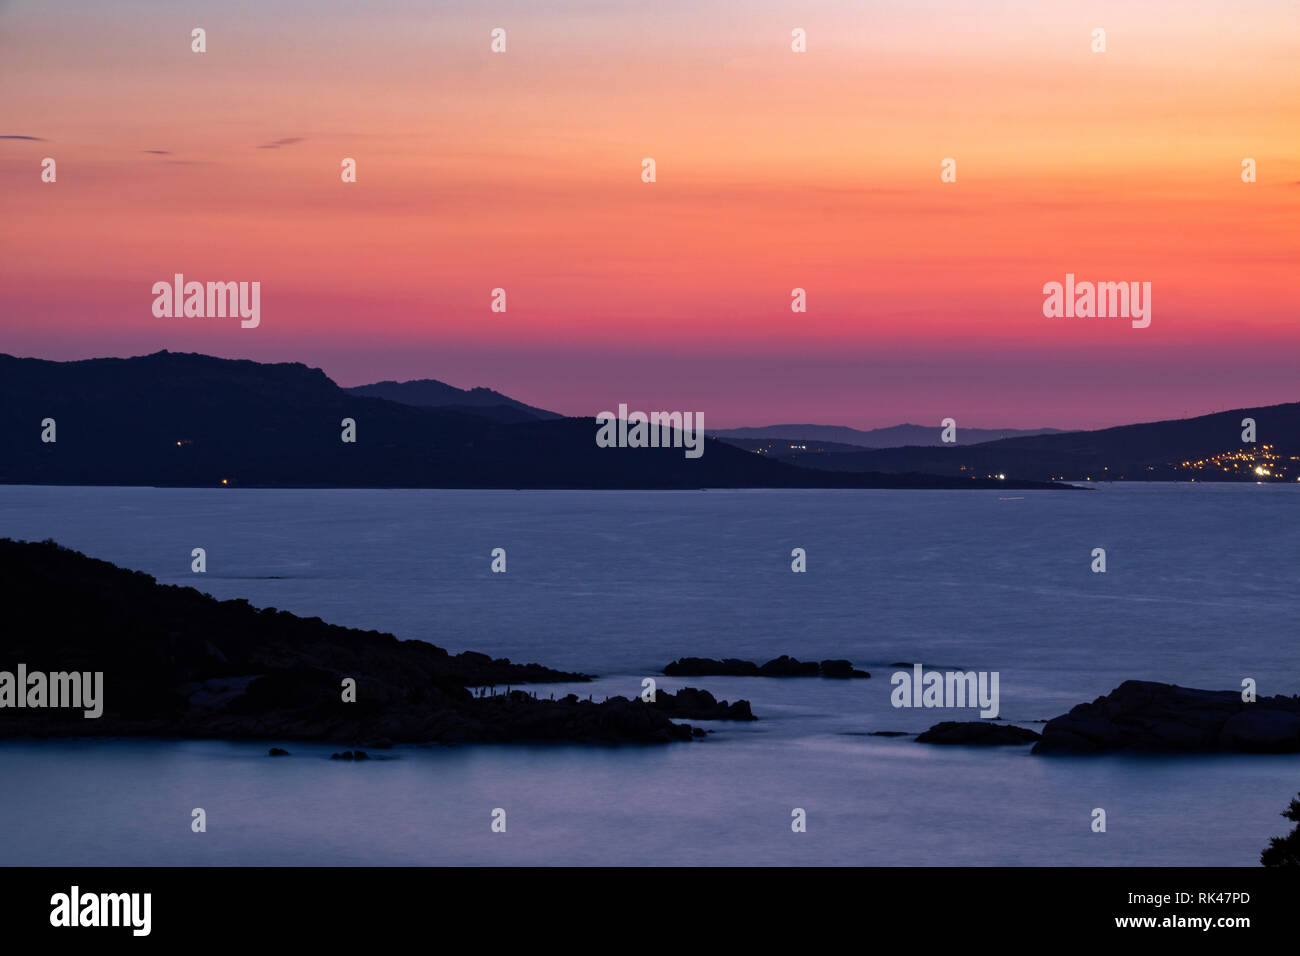 Colourful After Sunset View: Coastline of Northern Sardinia Mediterranean Ocean and the Islands of La Maddalena With Vivid Red Sky and Distant Lights. - Stock Image